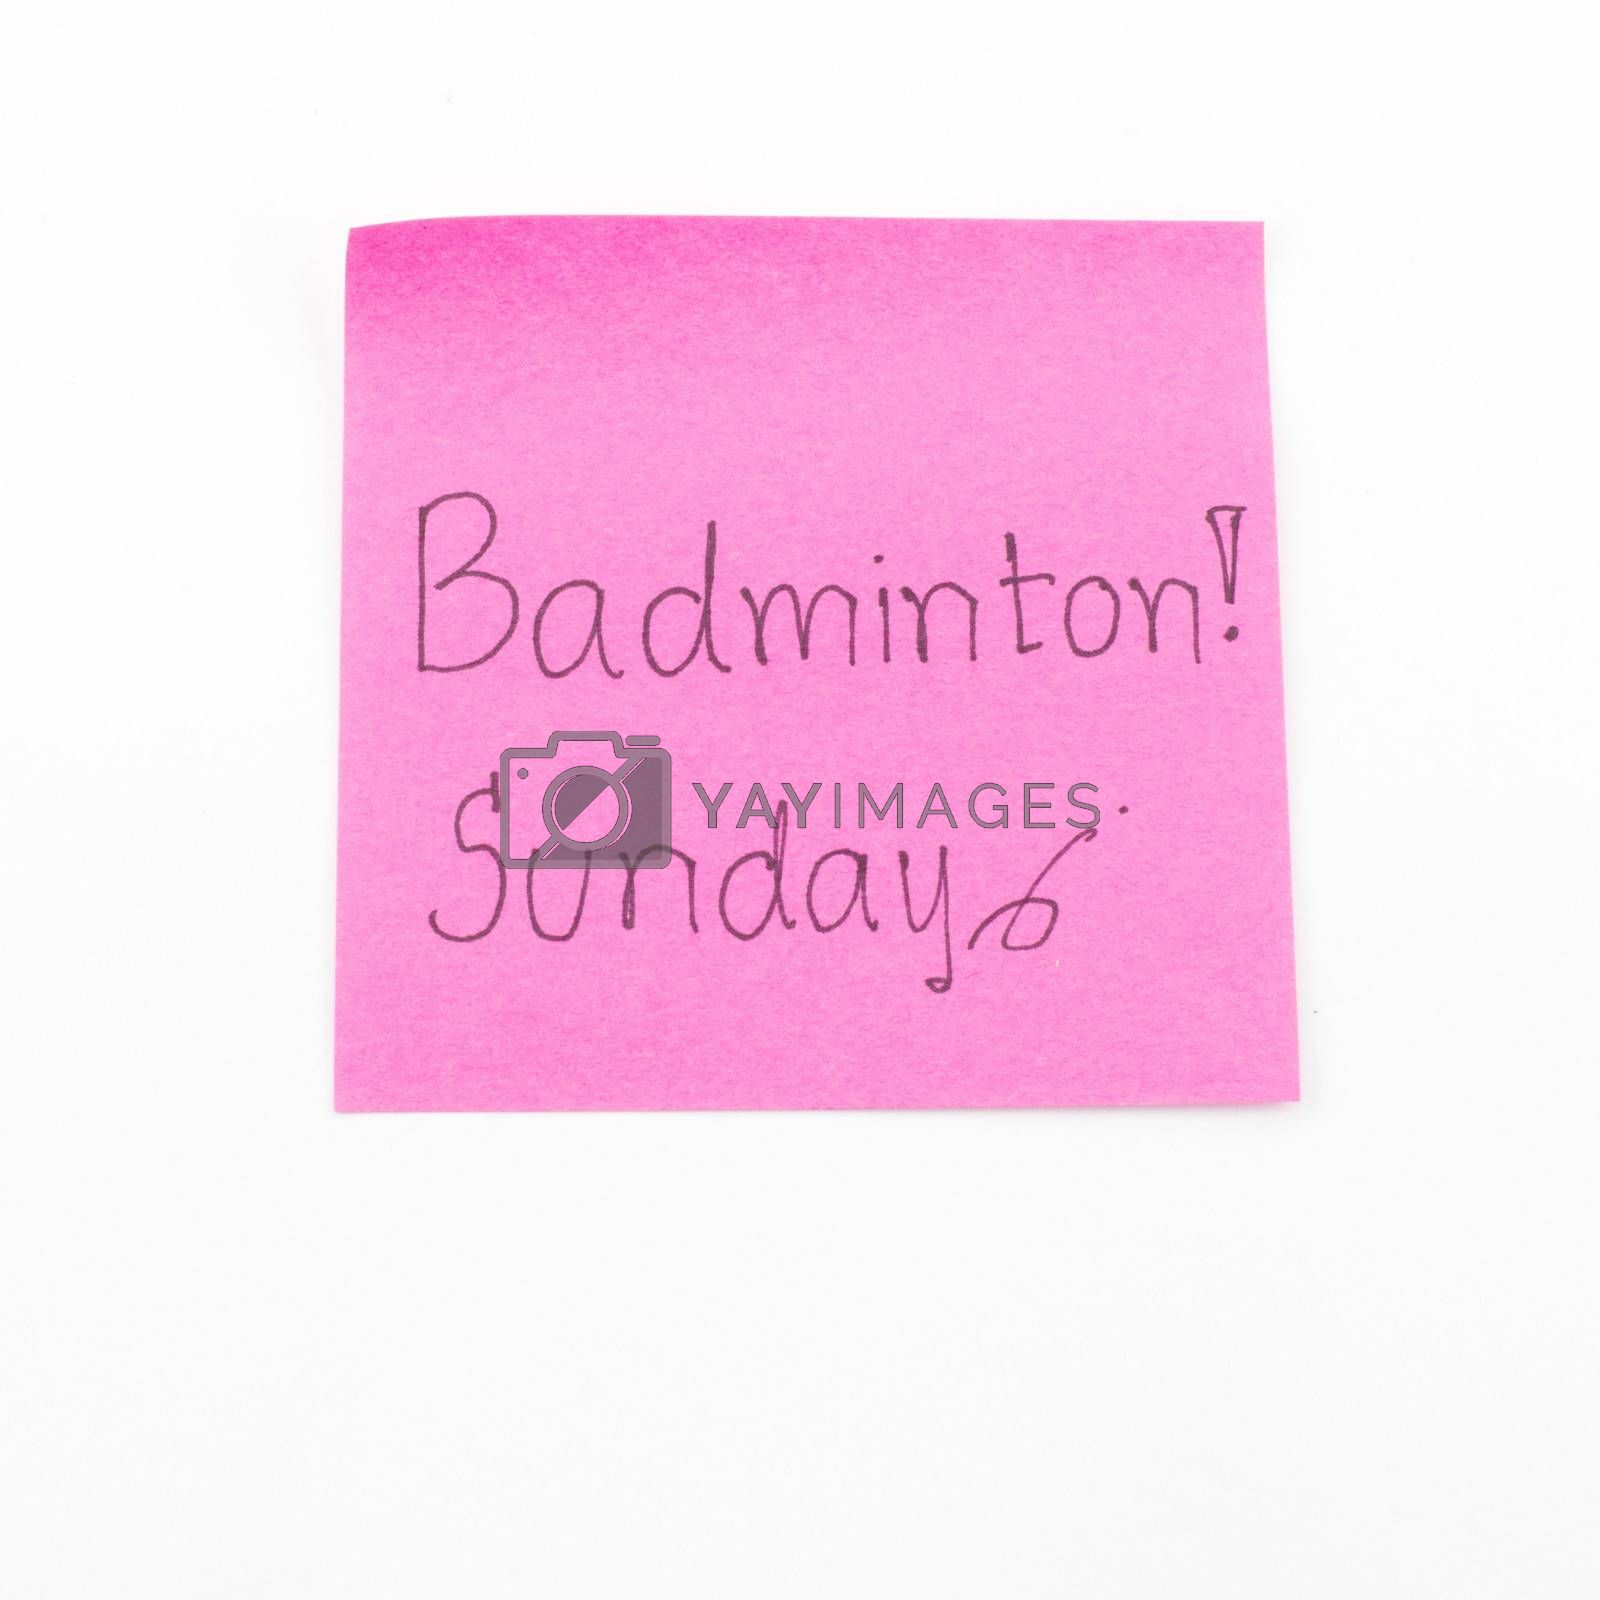 don't forget play badminton on sunday post it isolated on white background